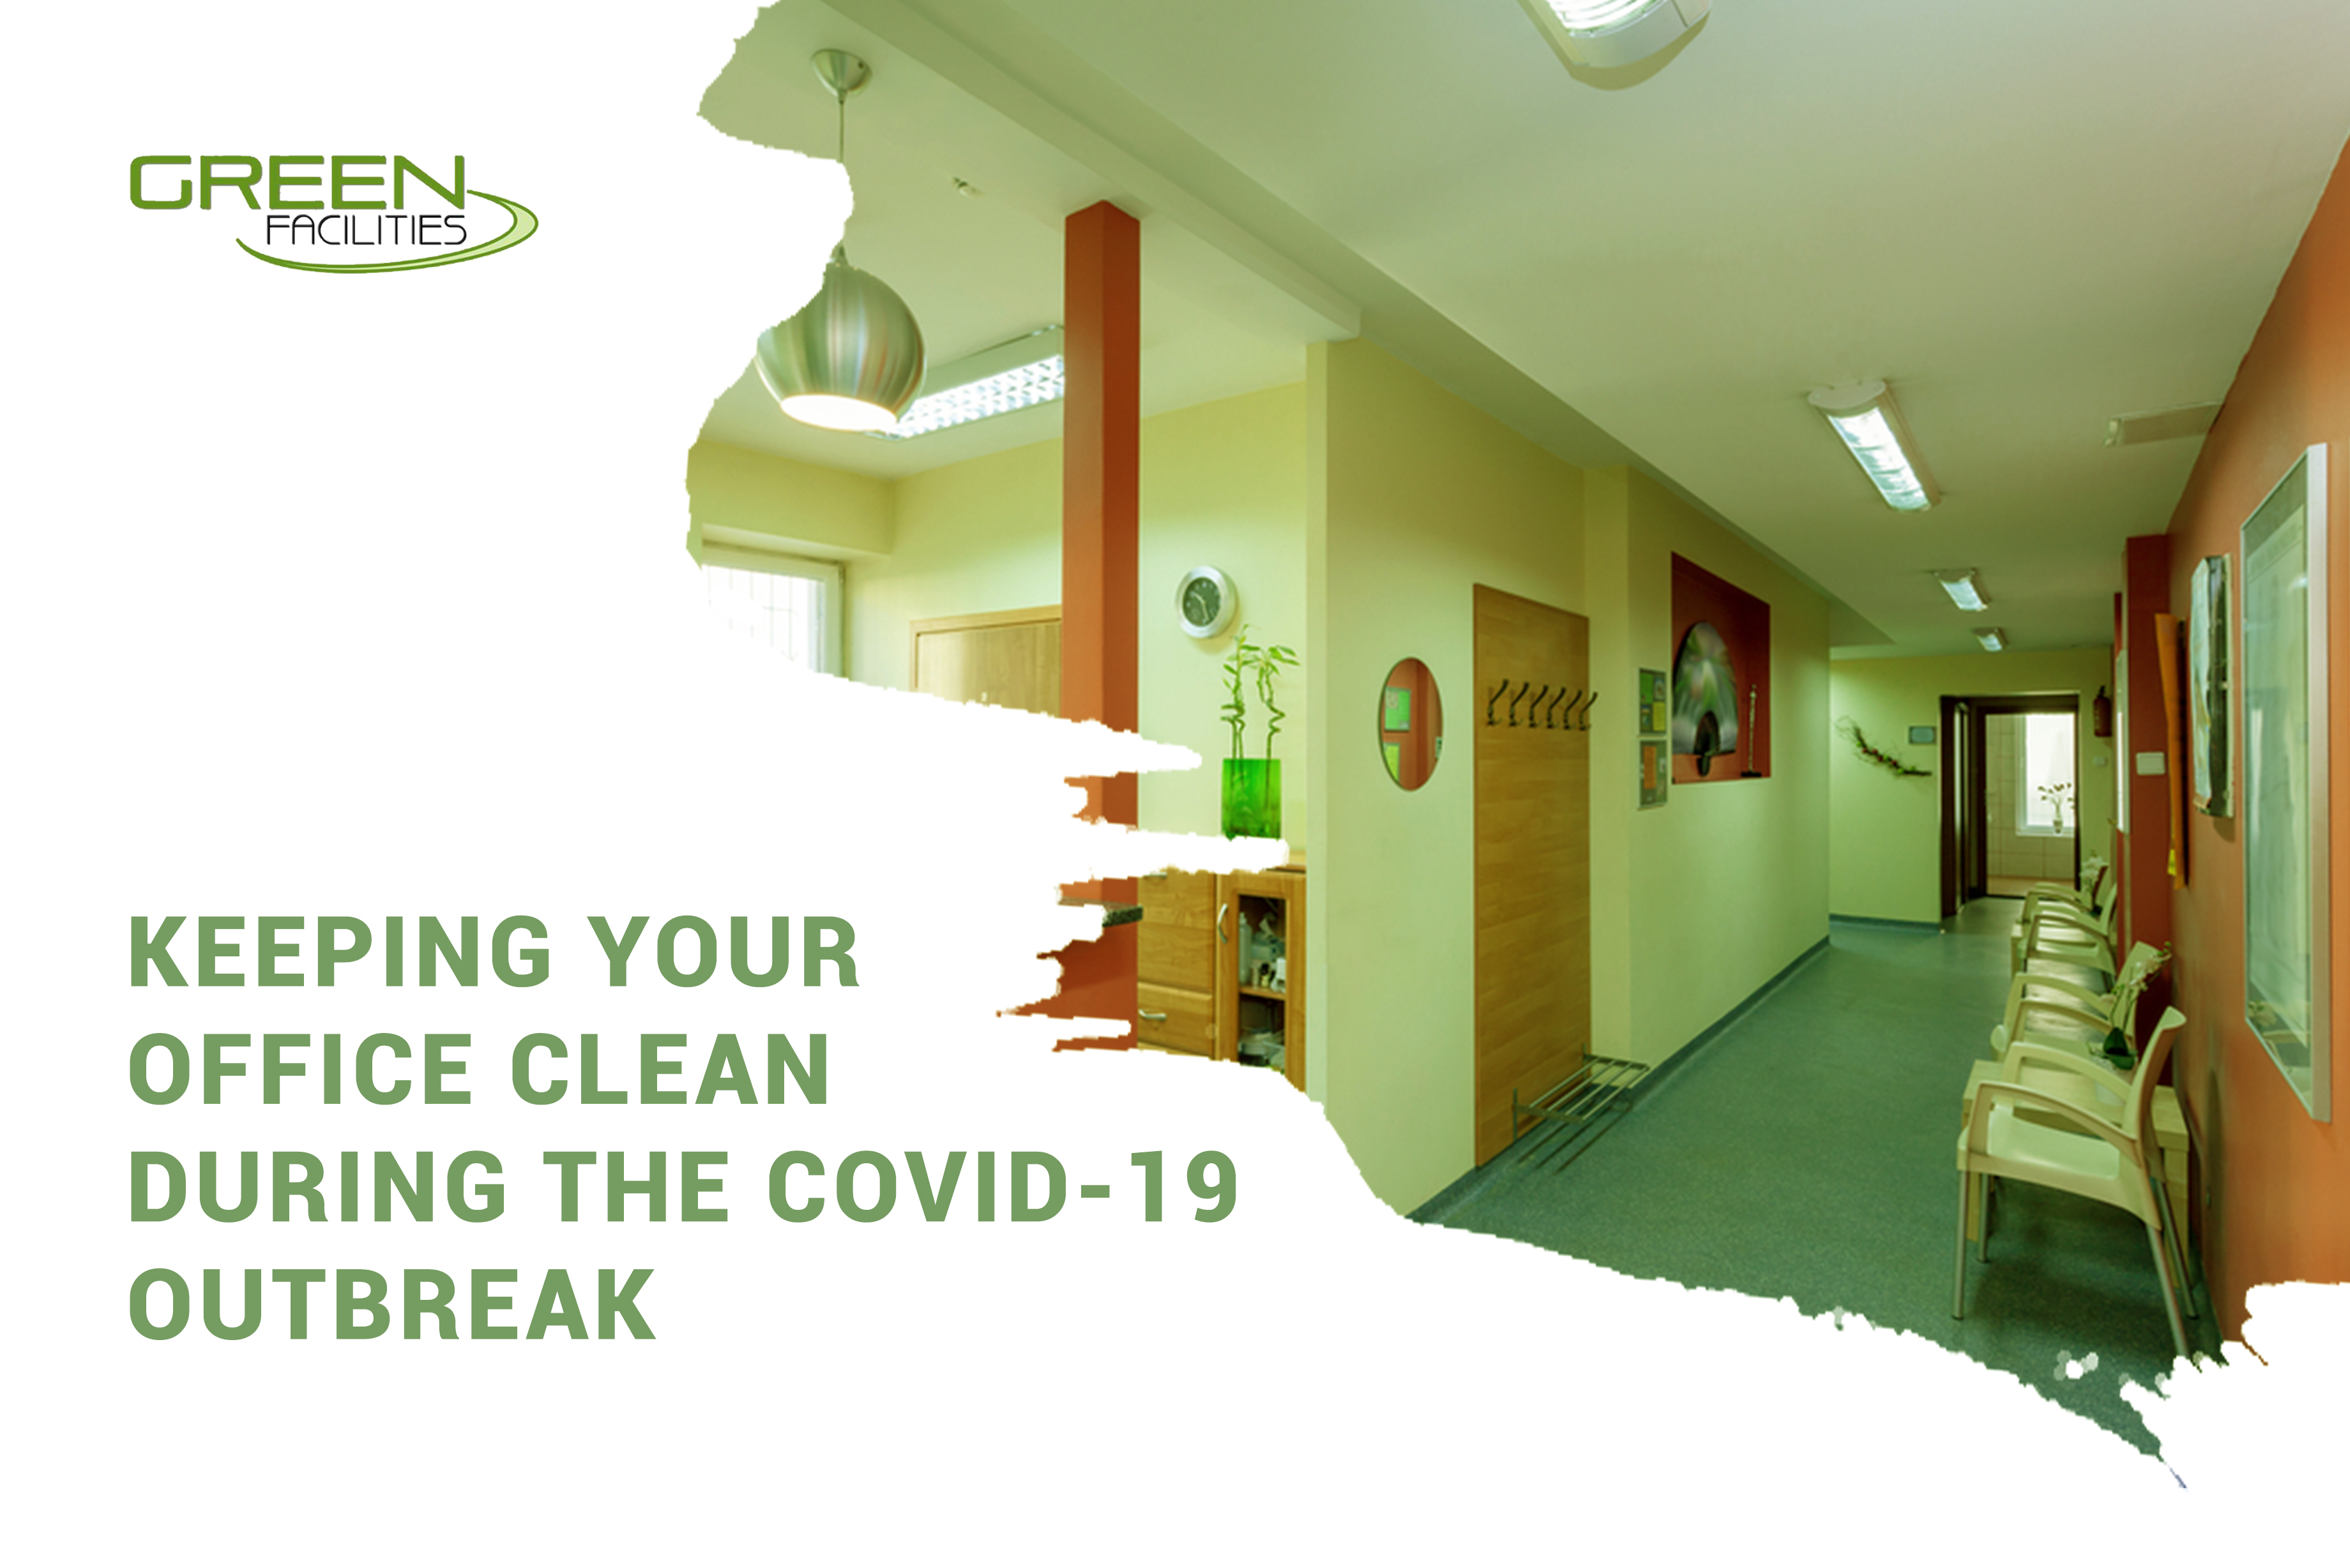 Keeping Your Office Clean During the COVID-19 Outbreak